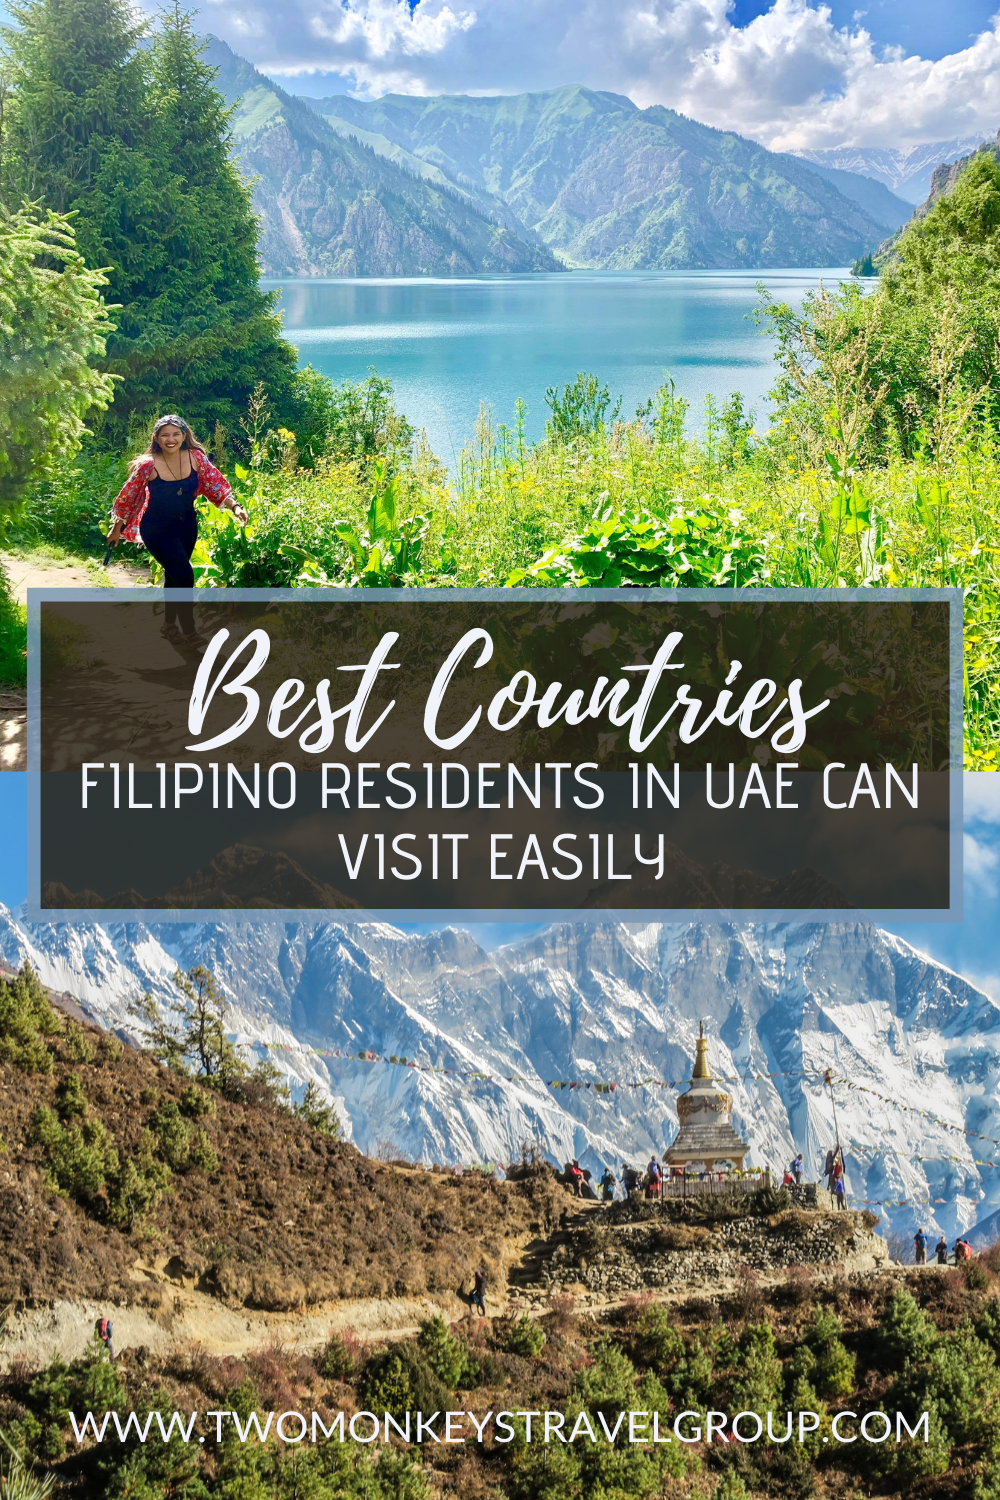 15 Best Countries Filipino Residents in UAE Can Visit Easily